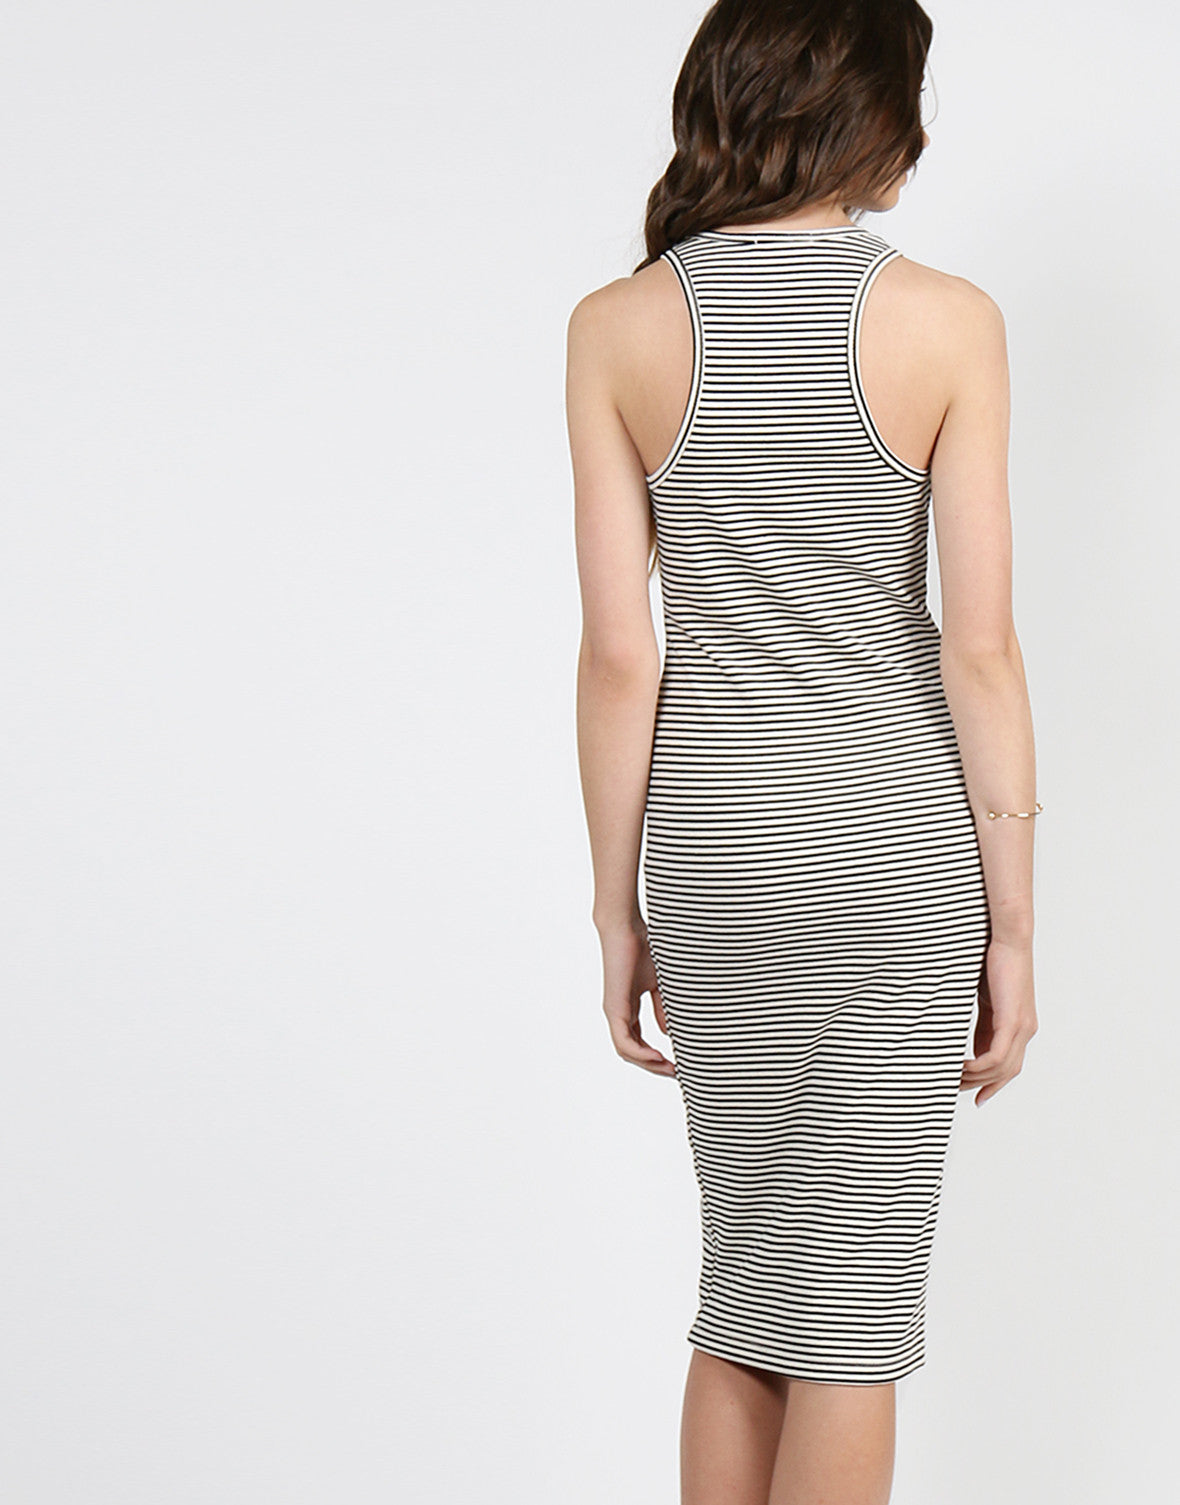 Striped Midi Tank Dress - Large - 2020AVE